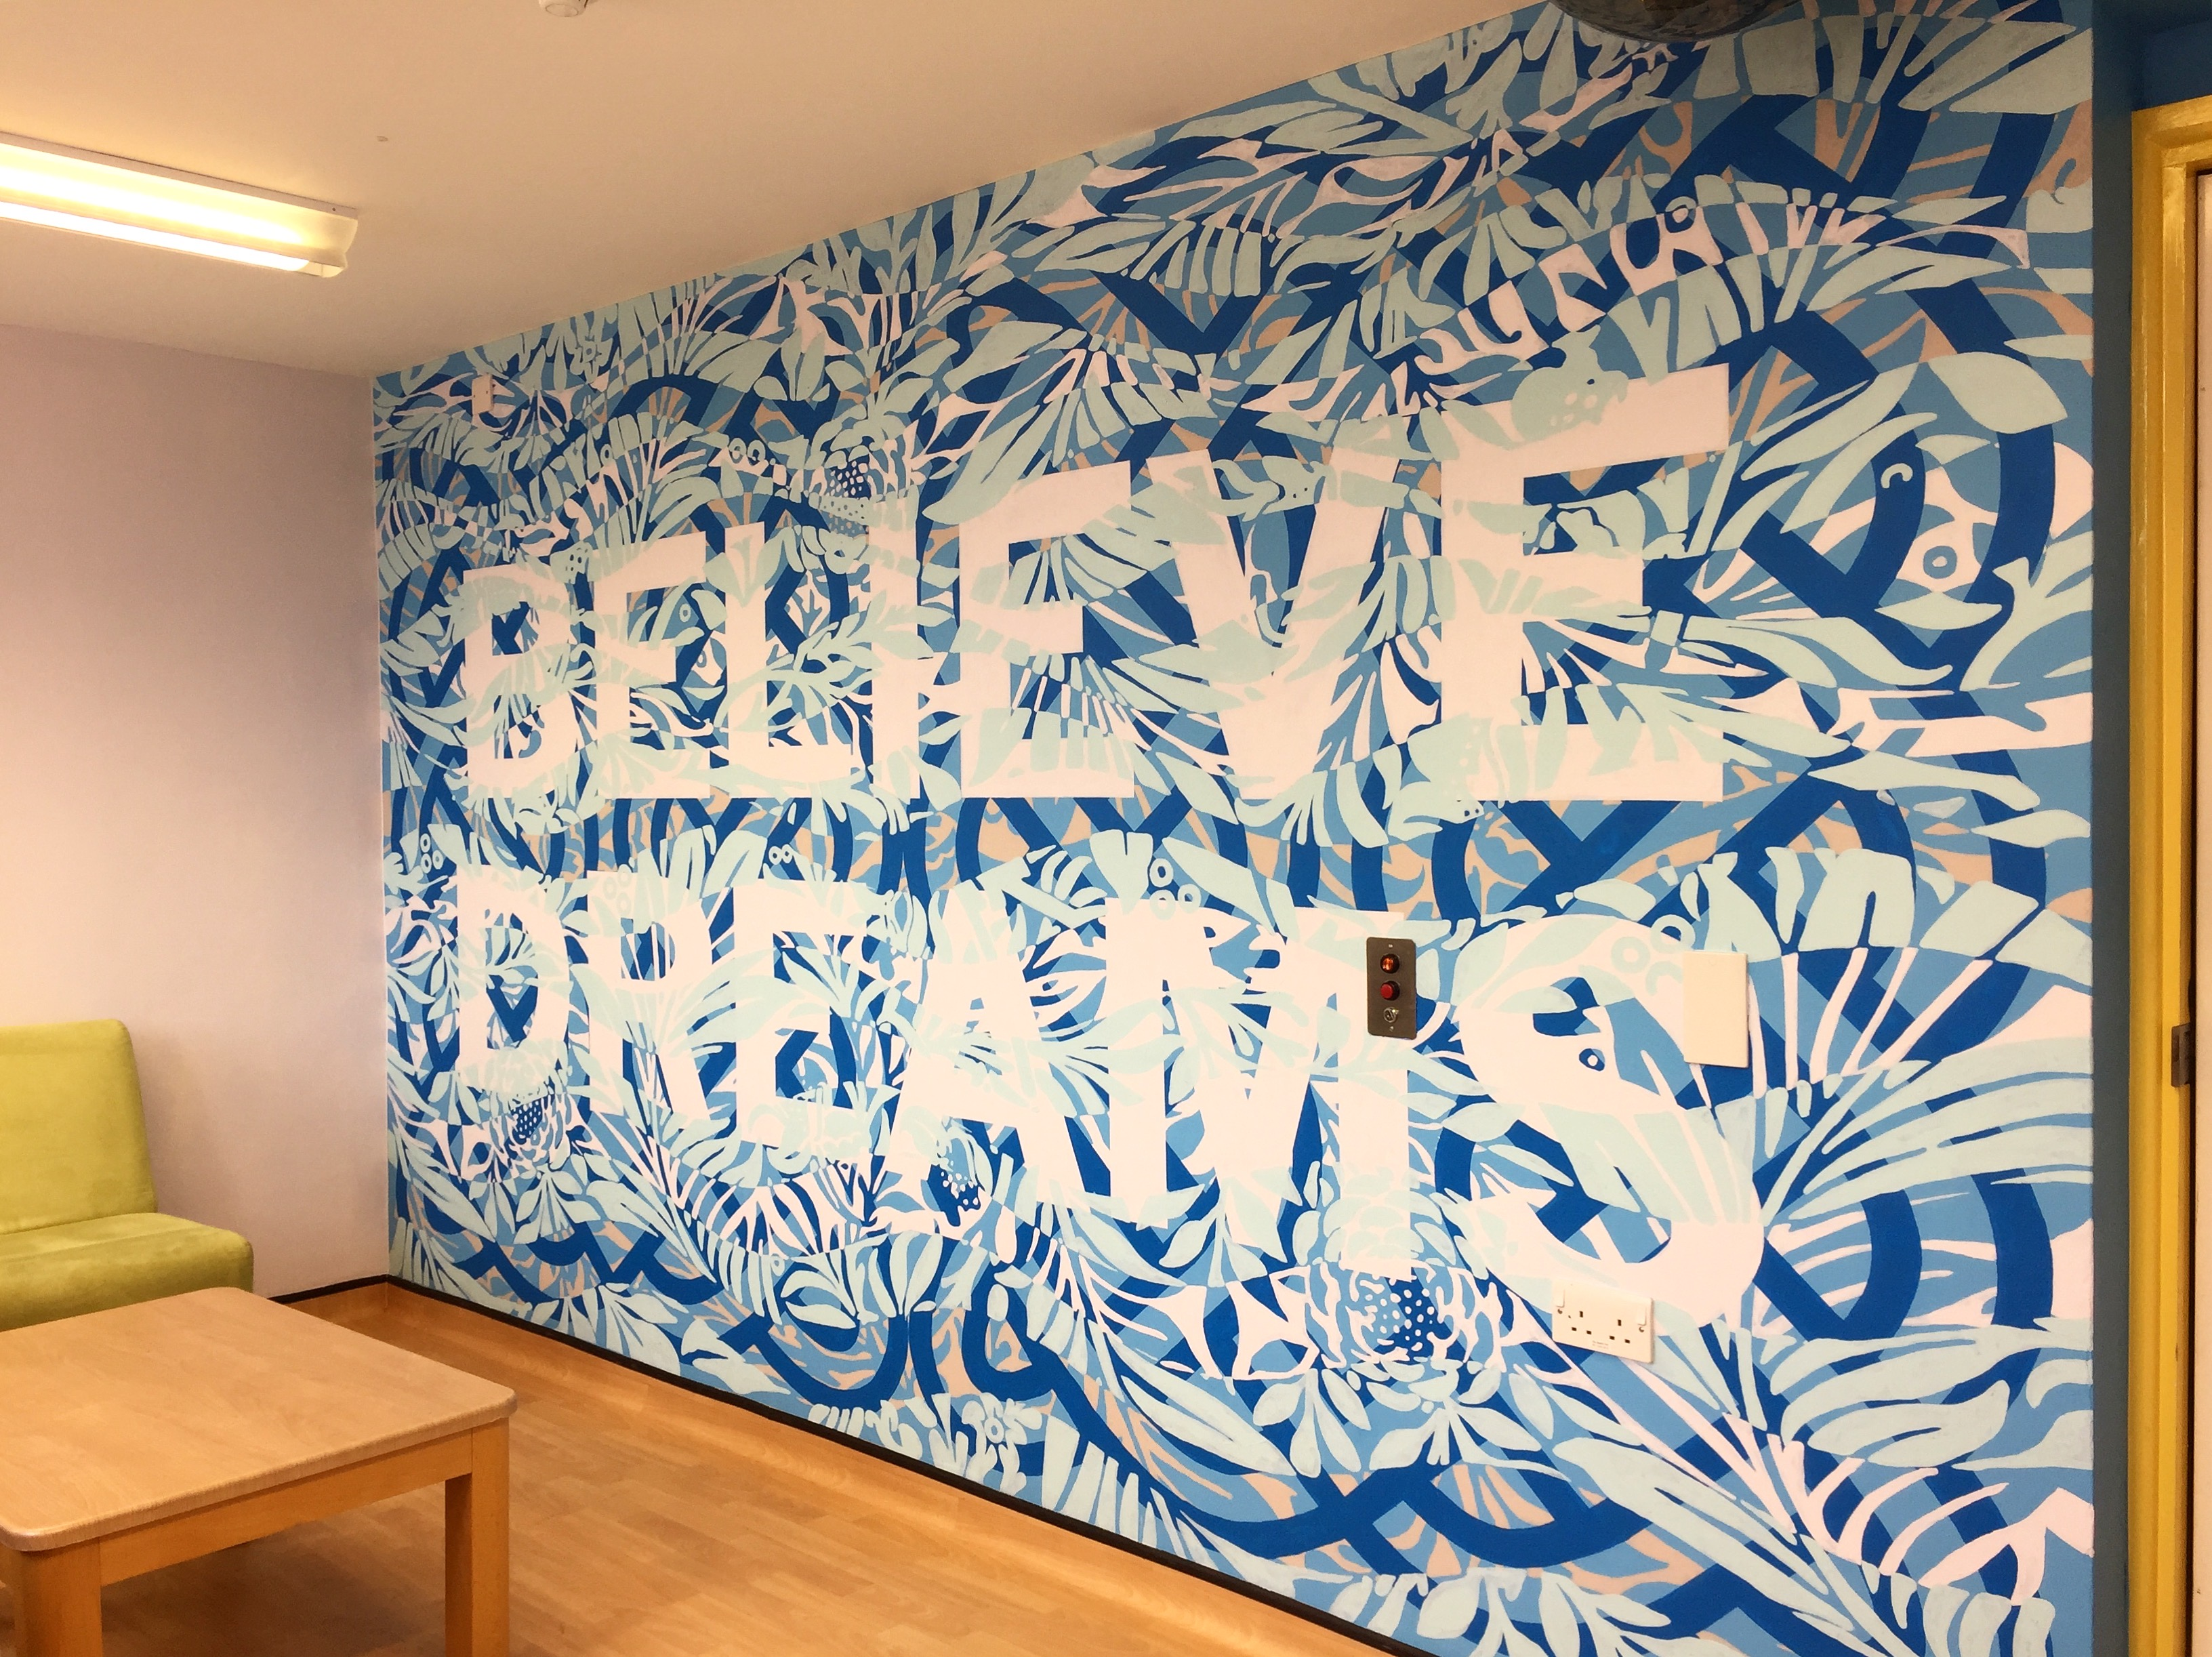 Wall painting by Mark Titchner, in the Family Room at Snowsfields Adolescent Unit in The Maudsley Hospital.